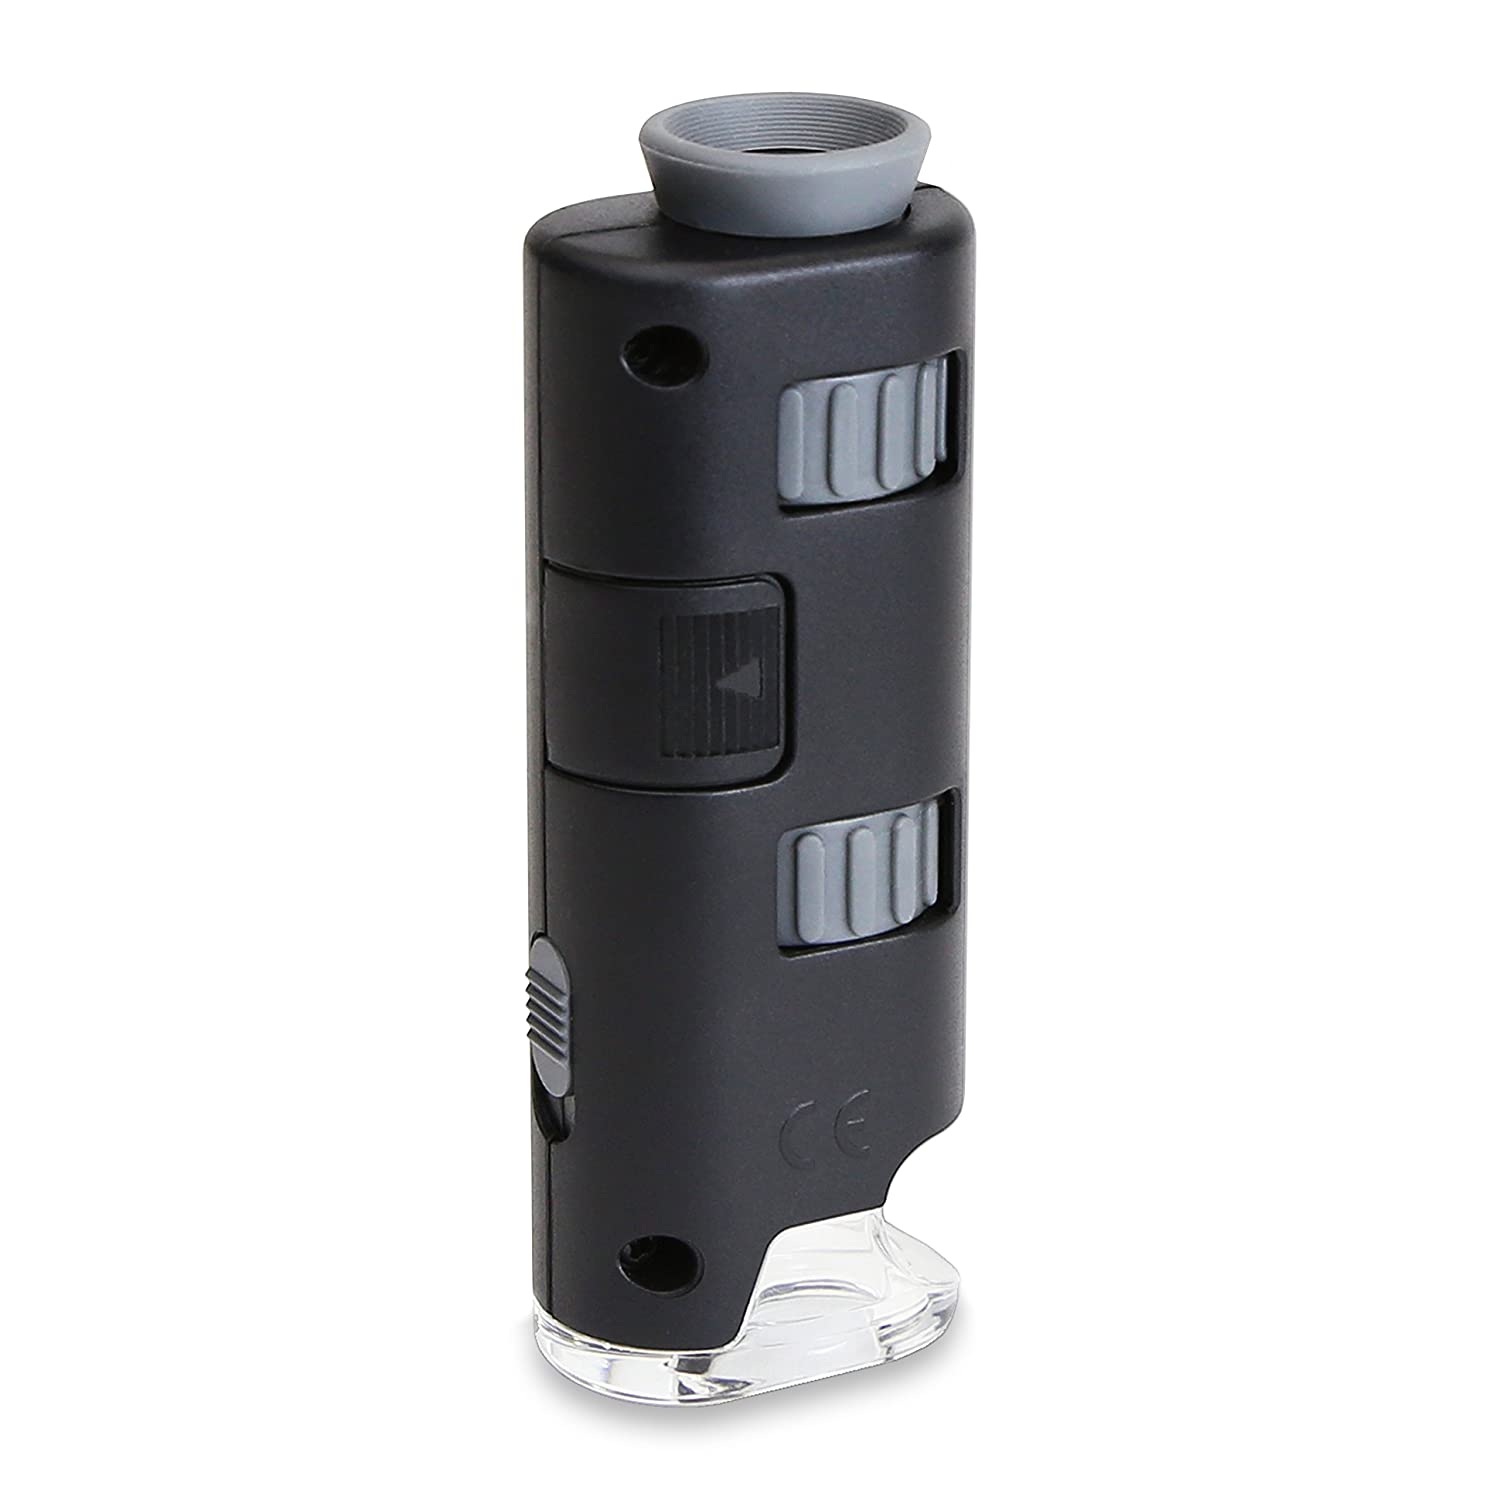 Carson MicroMax Ultra-Portable LED Lighted 60-75x Pocket Microscope